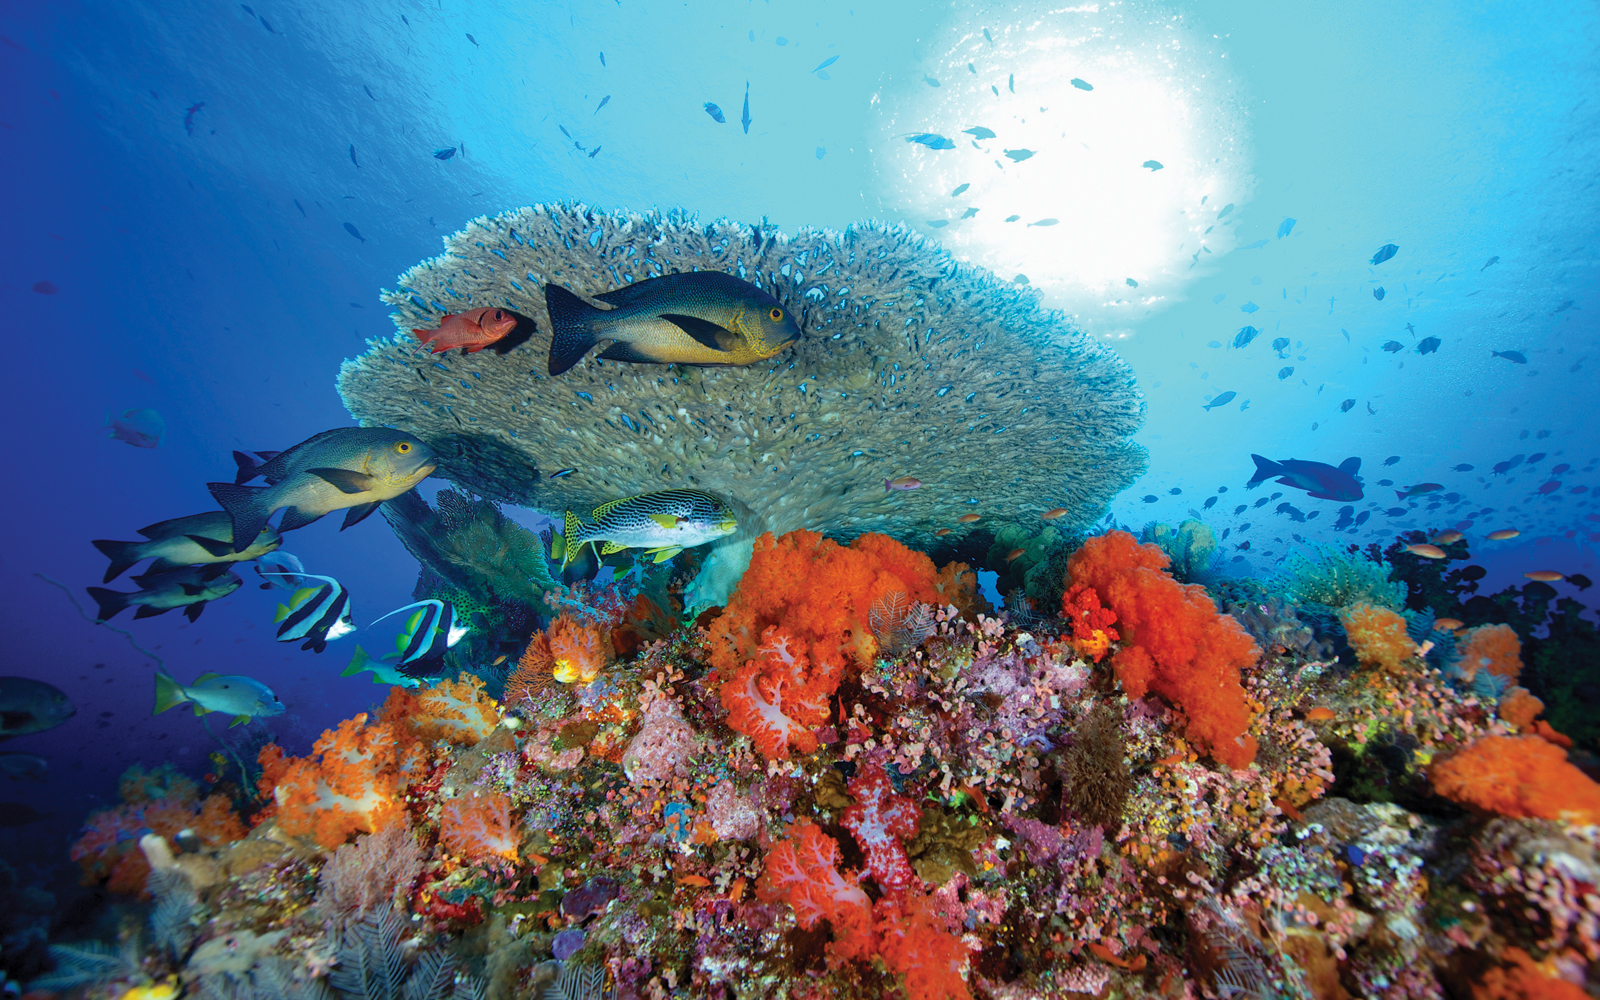 Bloomberg Philanthropies' ocean conservation efforts help protect marine life in coral reefs like this one off the coast of Indonesia.